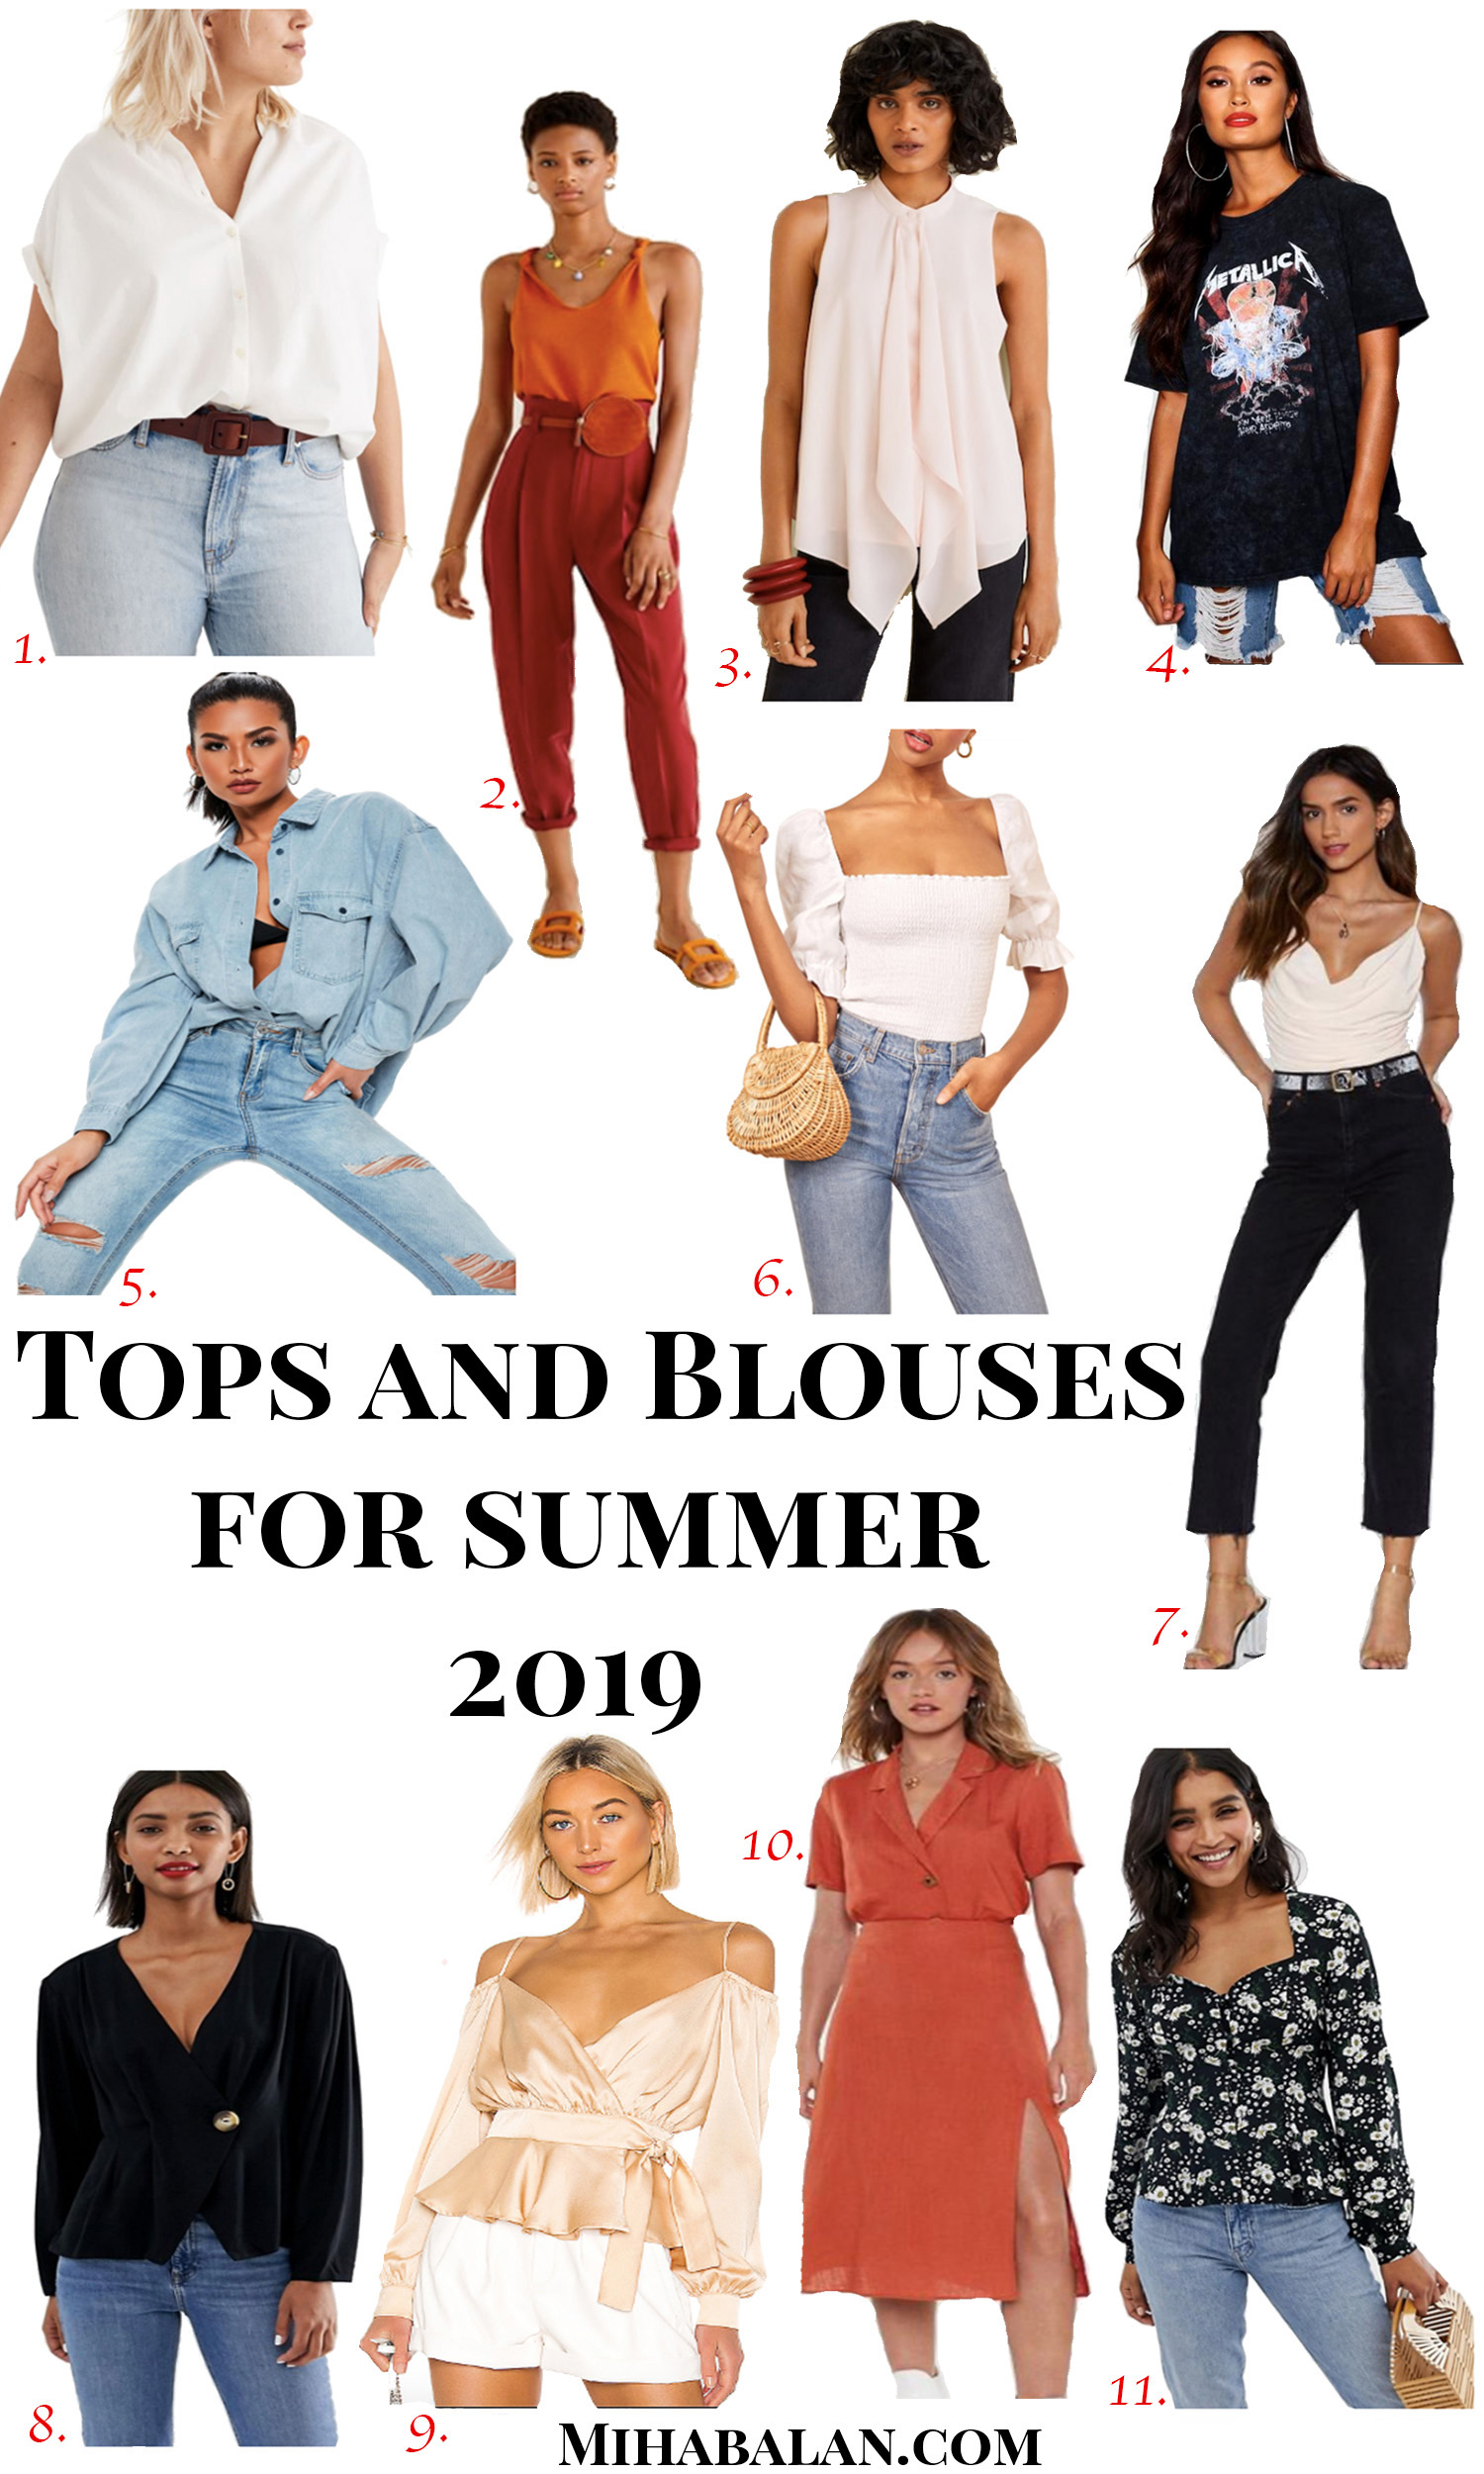 tops .and blouses for summer 2019, summer outfits, summer fashion, summer style, summer outfits ideas